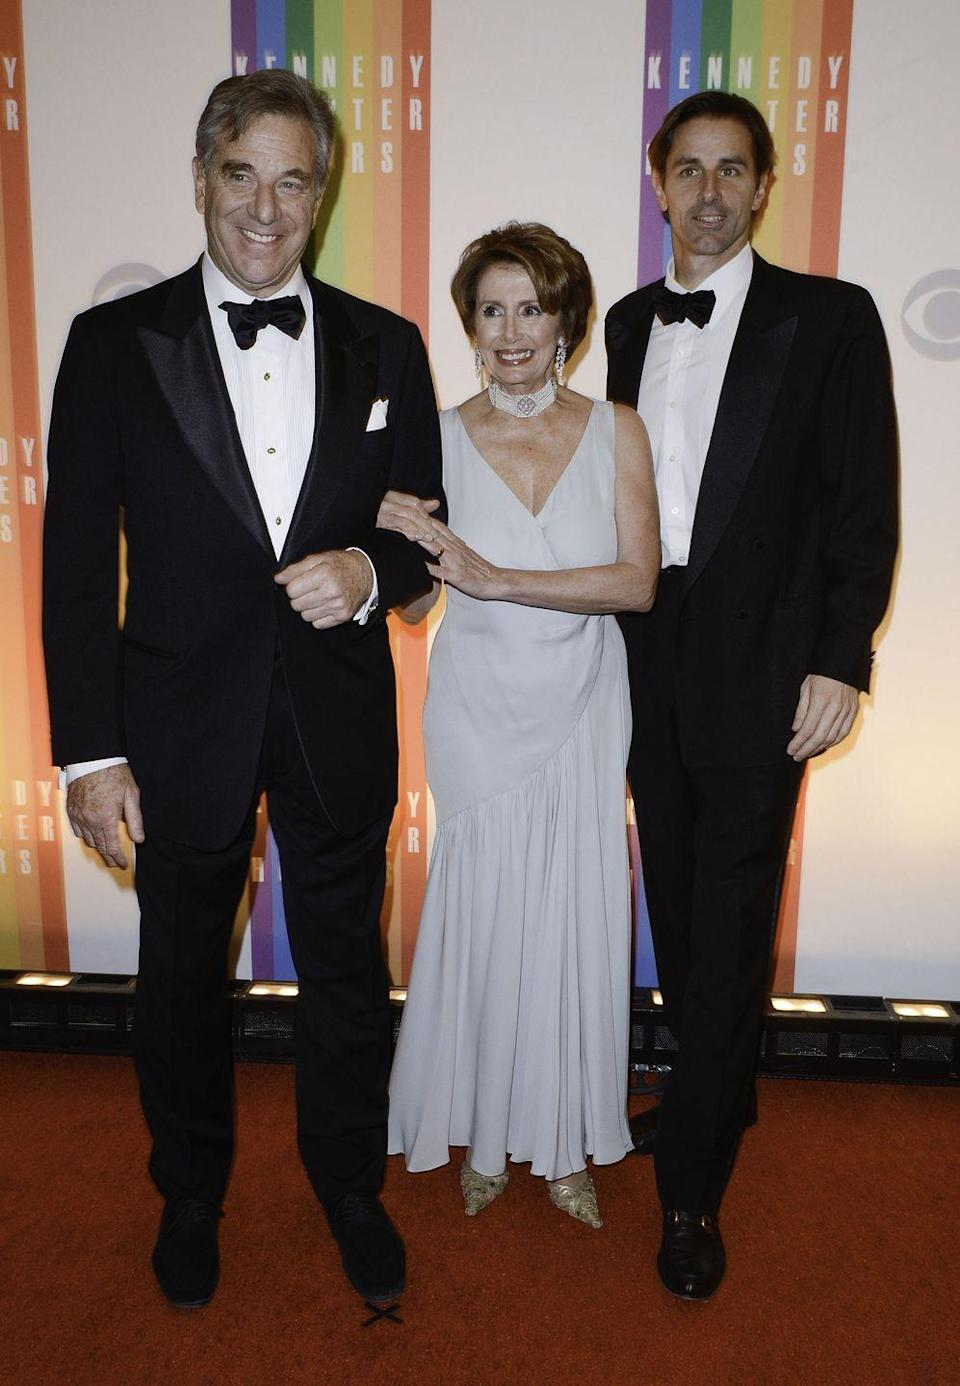 <p>Nancy Pelosi with her husband Paul and son Paul Pelosi Jr. attending the 35th Kennedy Center Honors.</p>